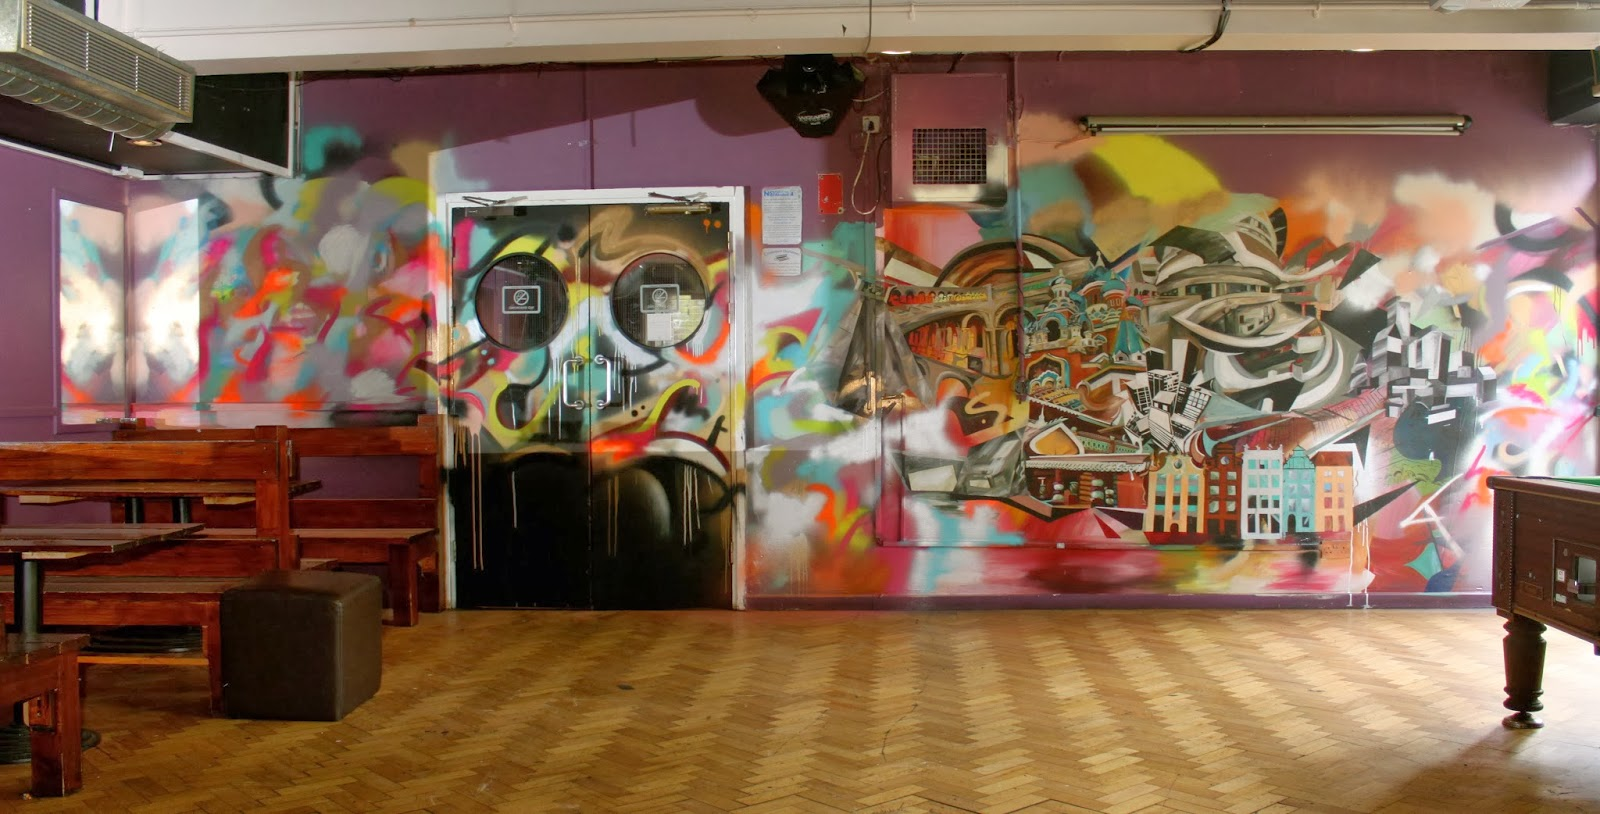 j a z z s t a n undercroft bar murals. Black Bedroom Furniture Sets. Home Design Ideas